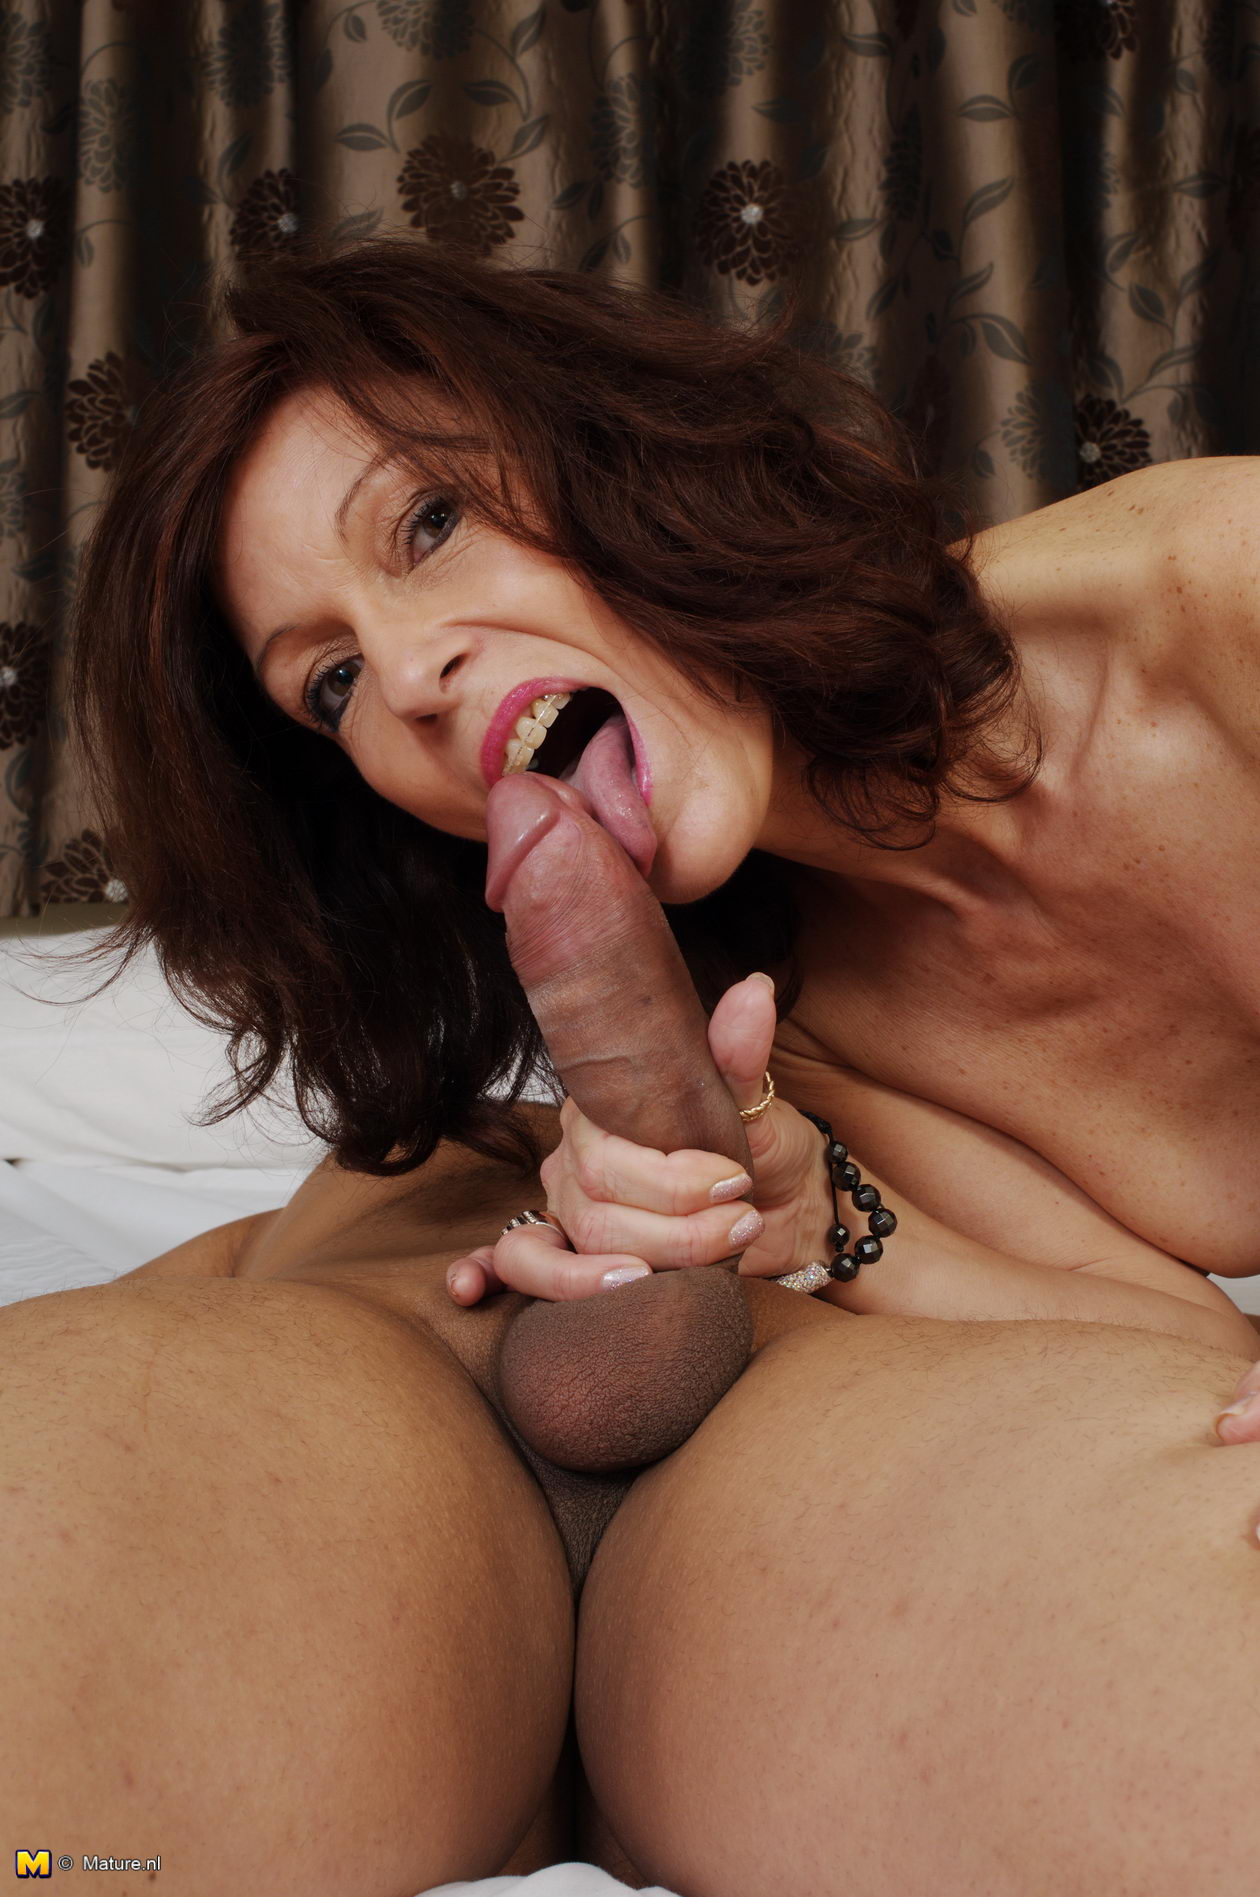 Hot Cougars Sucking Dick